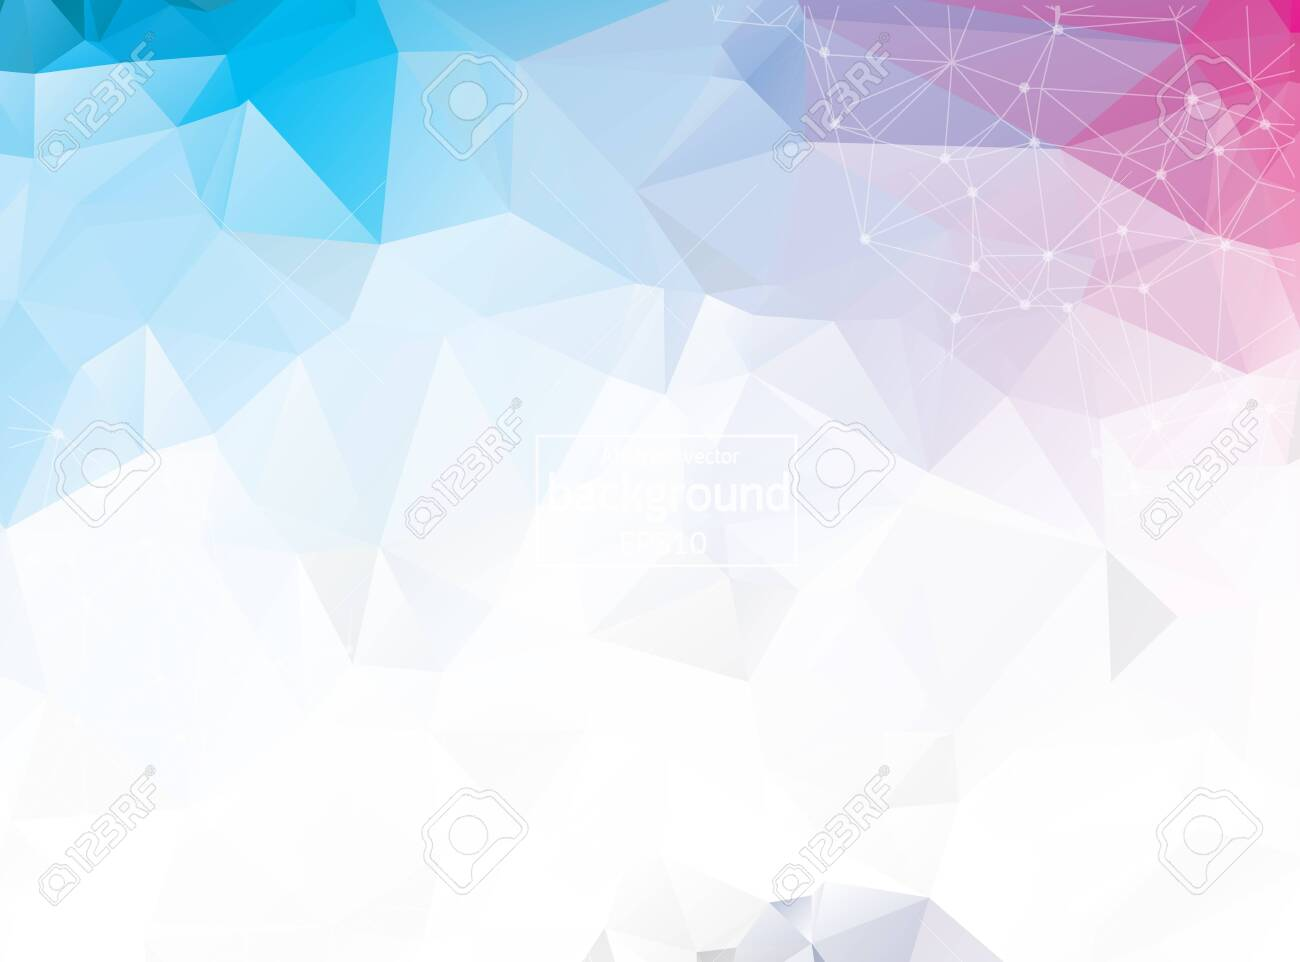 Abstract triangular blue background with polygonal abstract shapes - 121276704